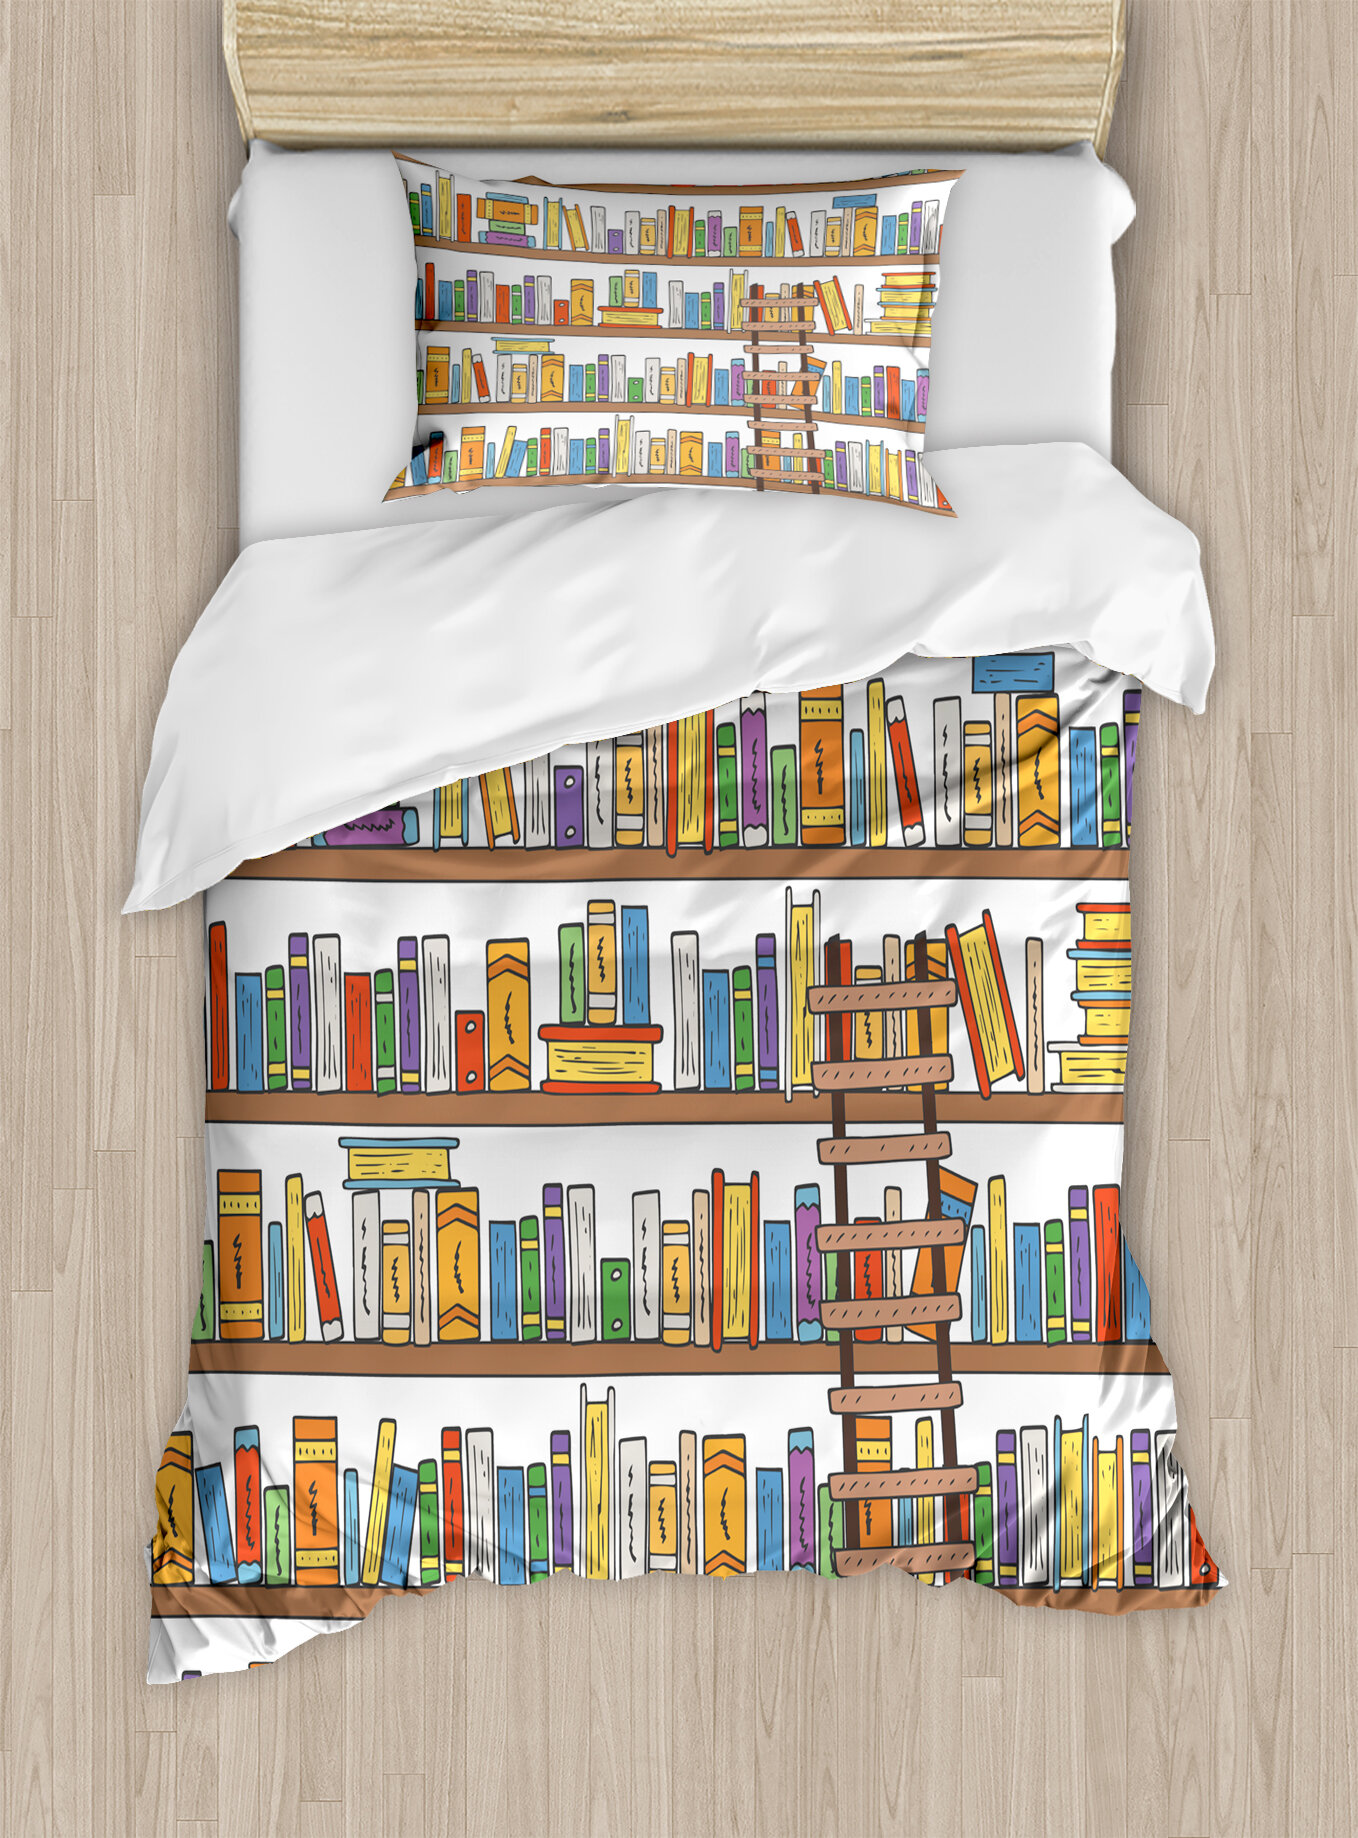 Children S Home Bedding Campus Duvet Cover Quilt Cover Set Pillow Cases Single Double King Super King Home Furniture Diy Brucebibee Com